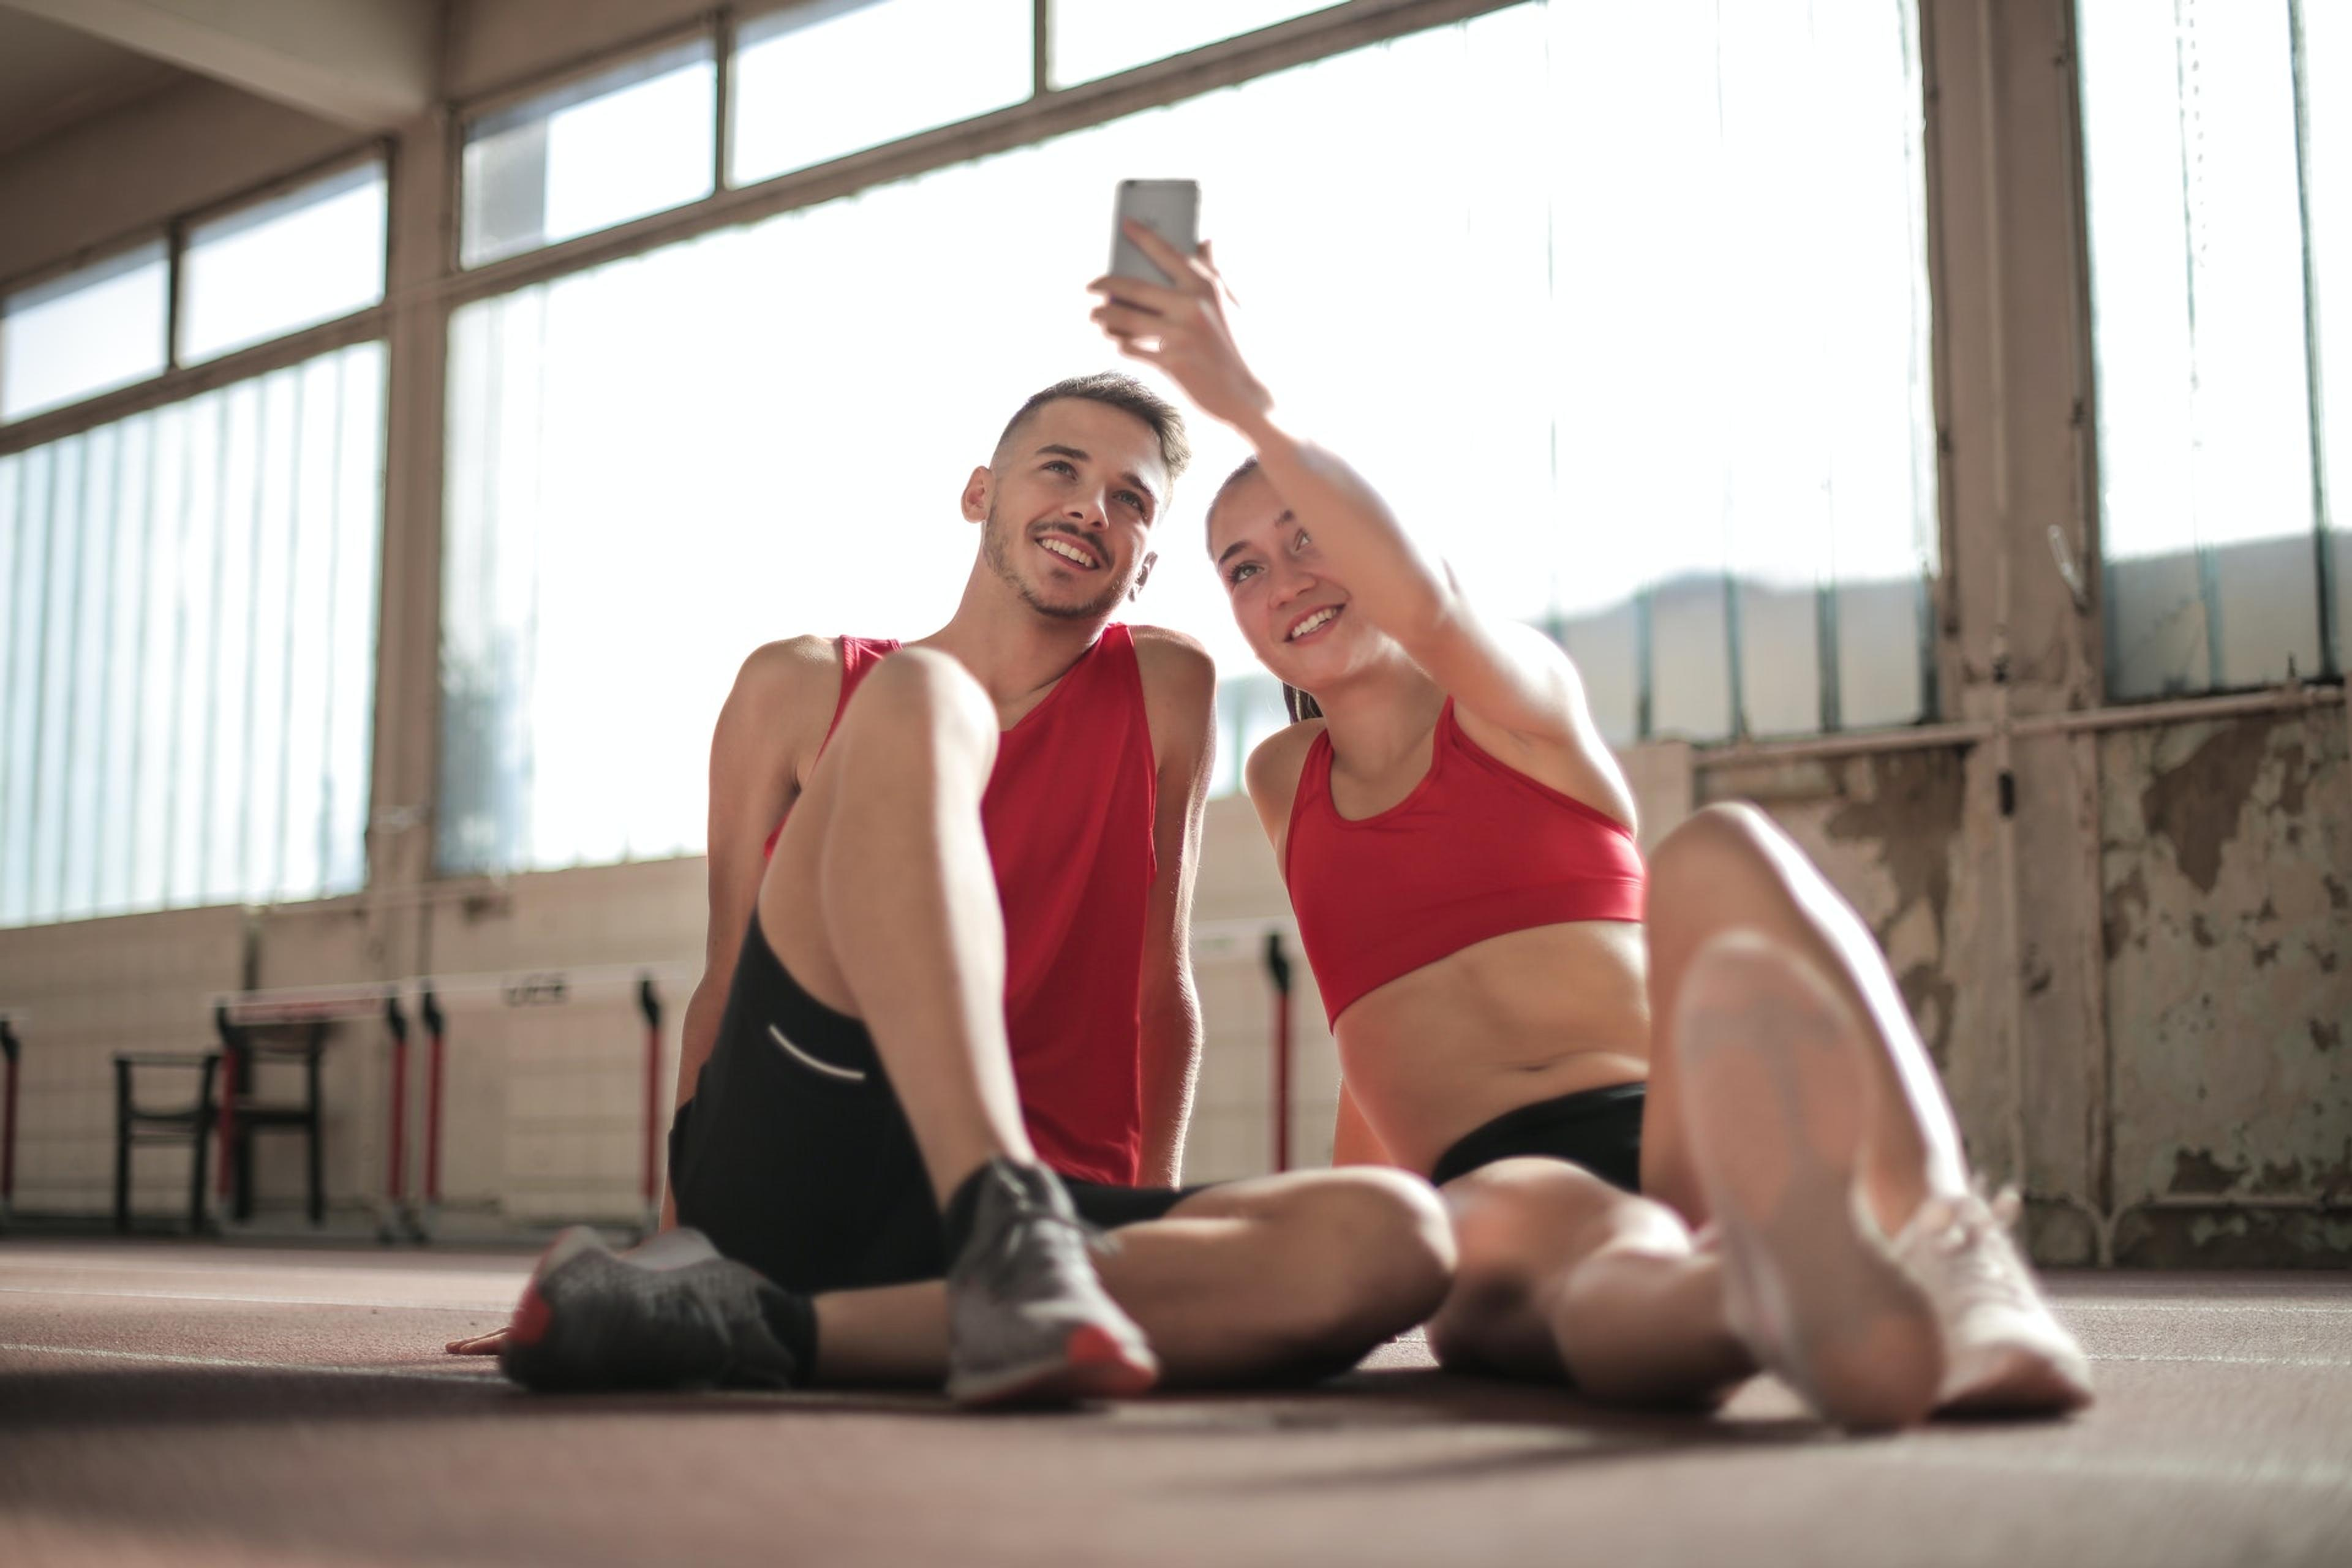 Couple posing at the gym taking selfies